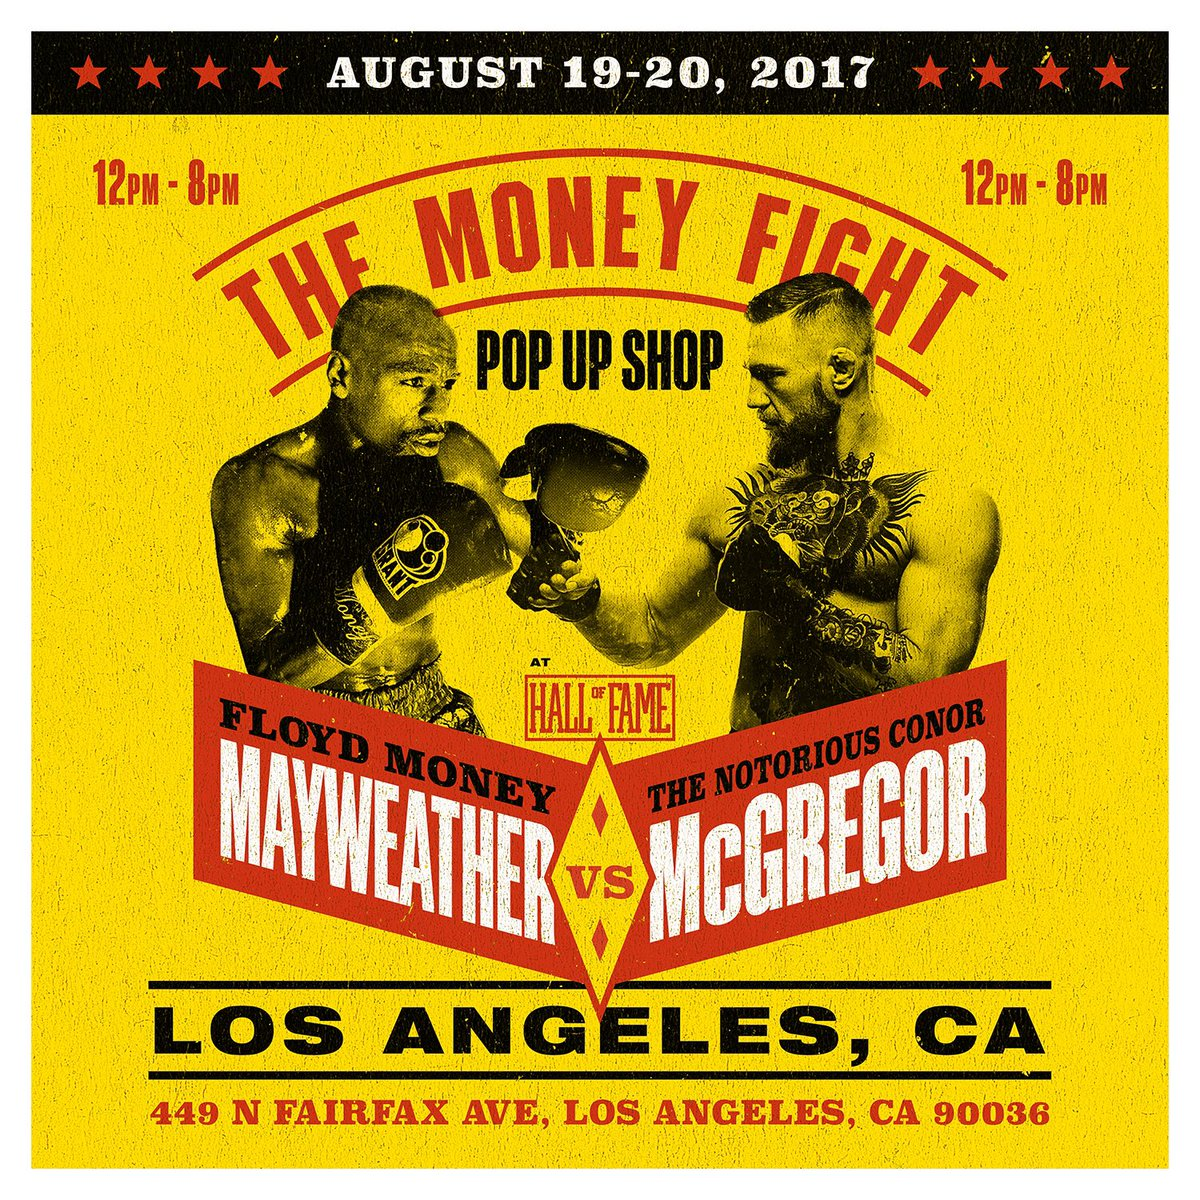 test Twitter Media - DOORS ARE OPEN! Stop by to get your fight merchandise &enter the KO raffle to win 8/26 +more! #MayweatherMcGregor 📍@HallofFameLTD  ⏰: 12-8pm https://t.co/N40hhPK0pe